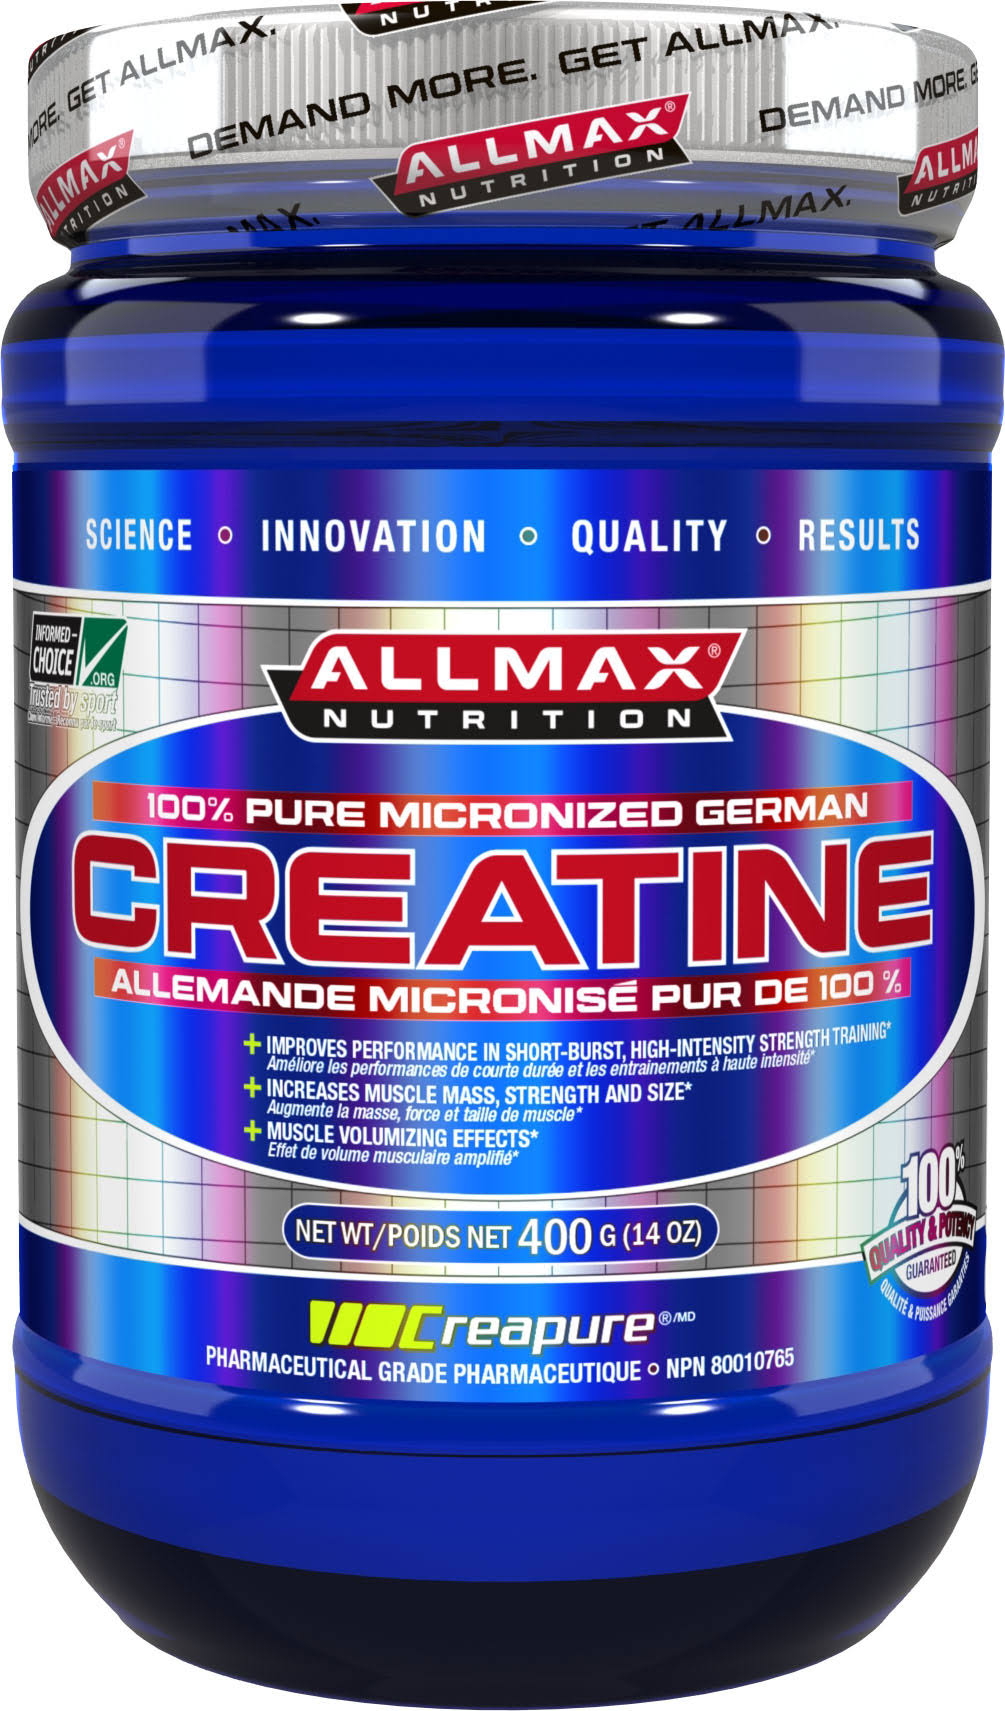 AllMax Nutrition Creatine Supplement - 400g